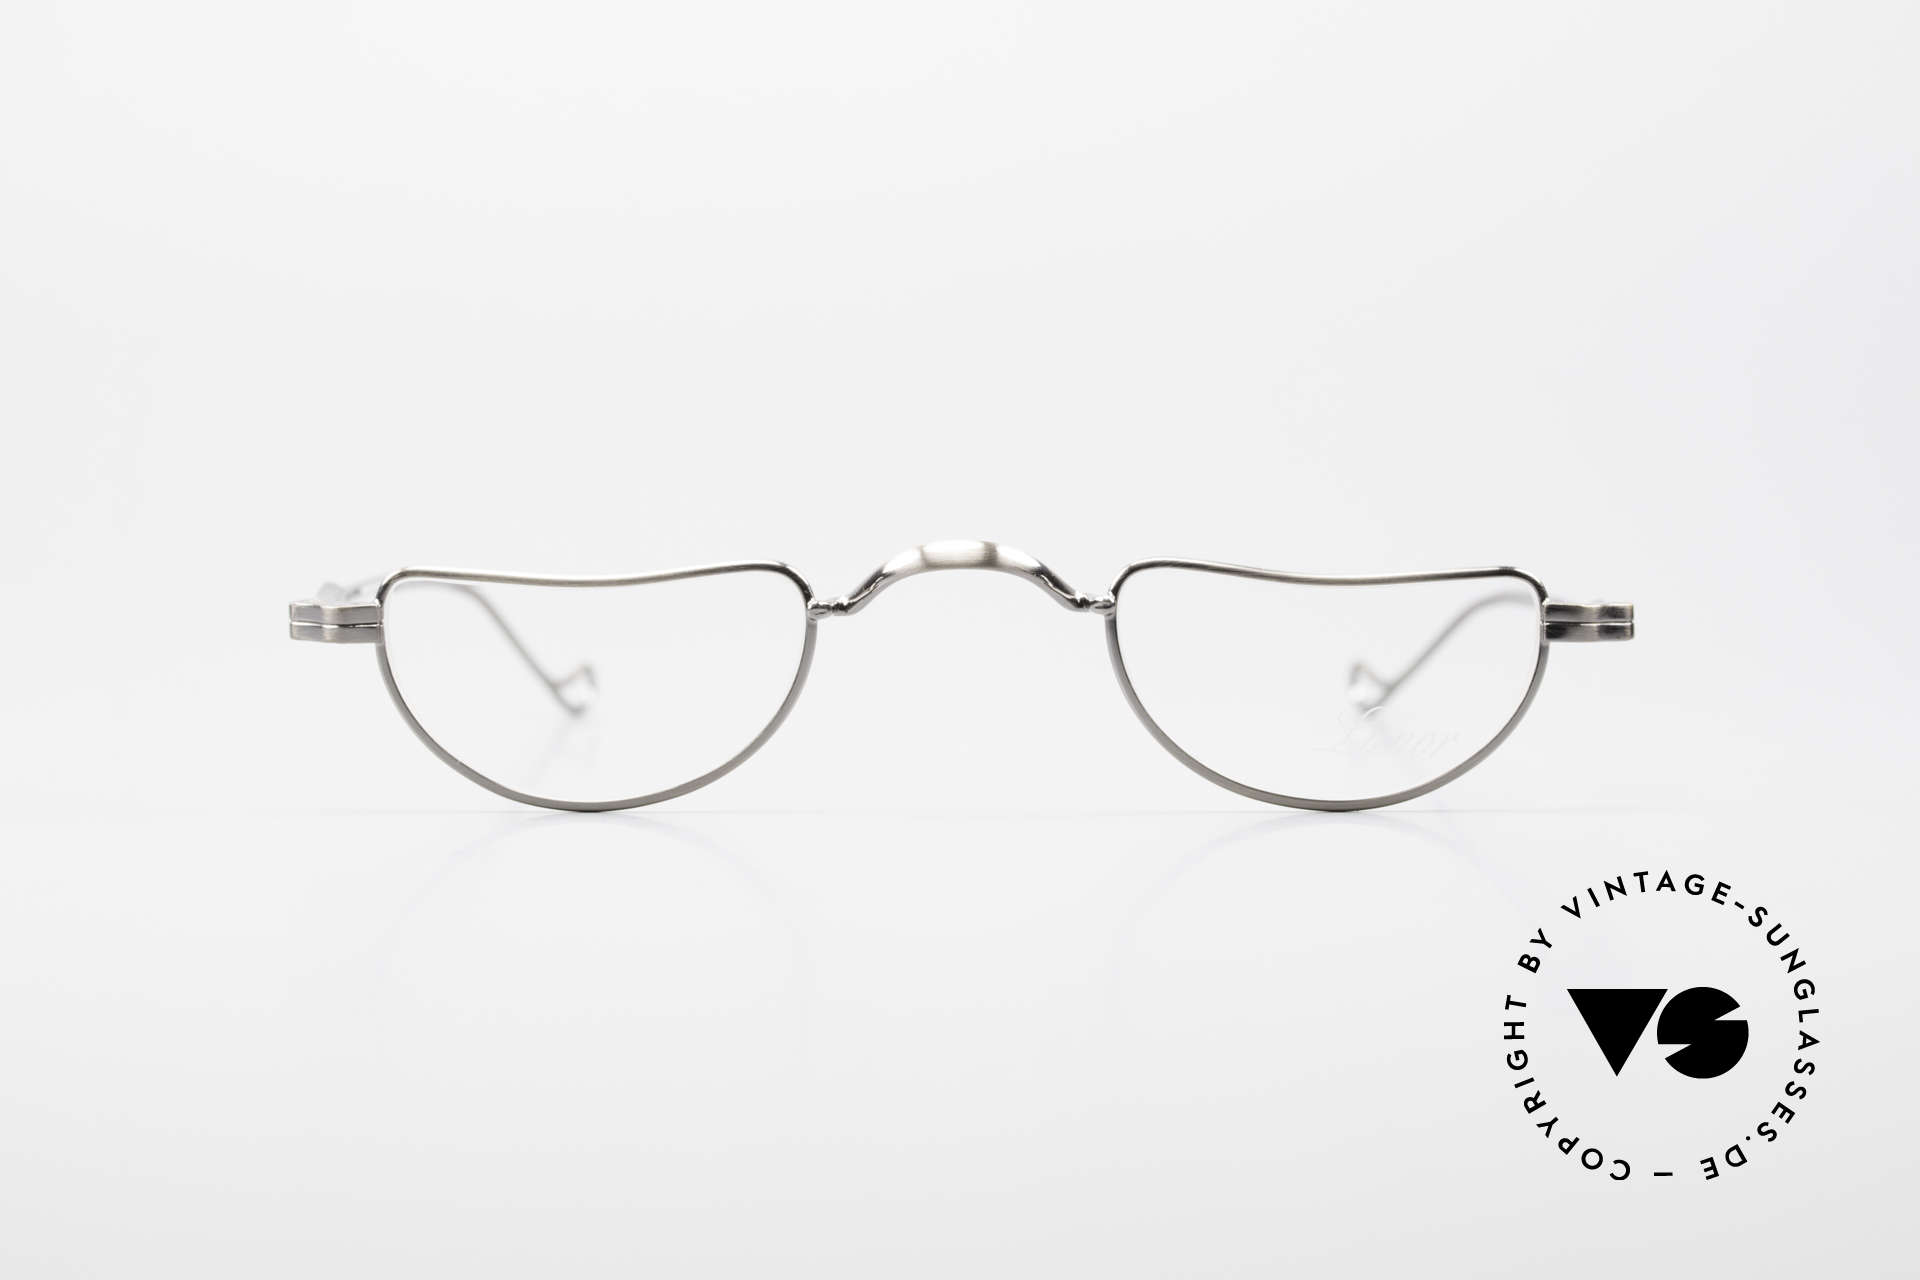 """Lunor II 07 Classic Reading Eyeglasses, model """"07"""" = the classic reading design in size 39/25, Made for Men and Women"""